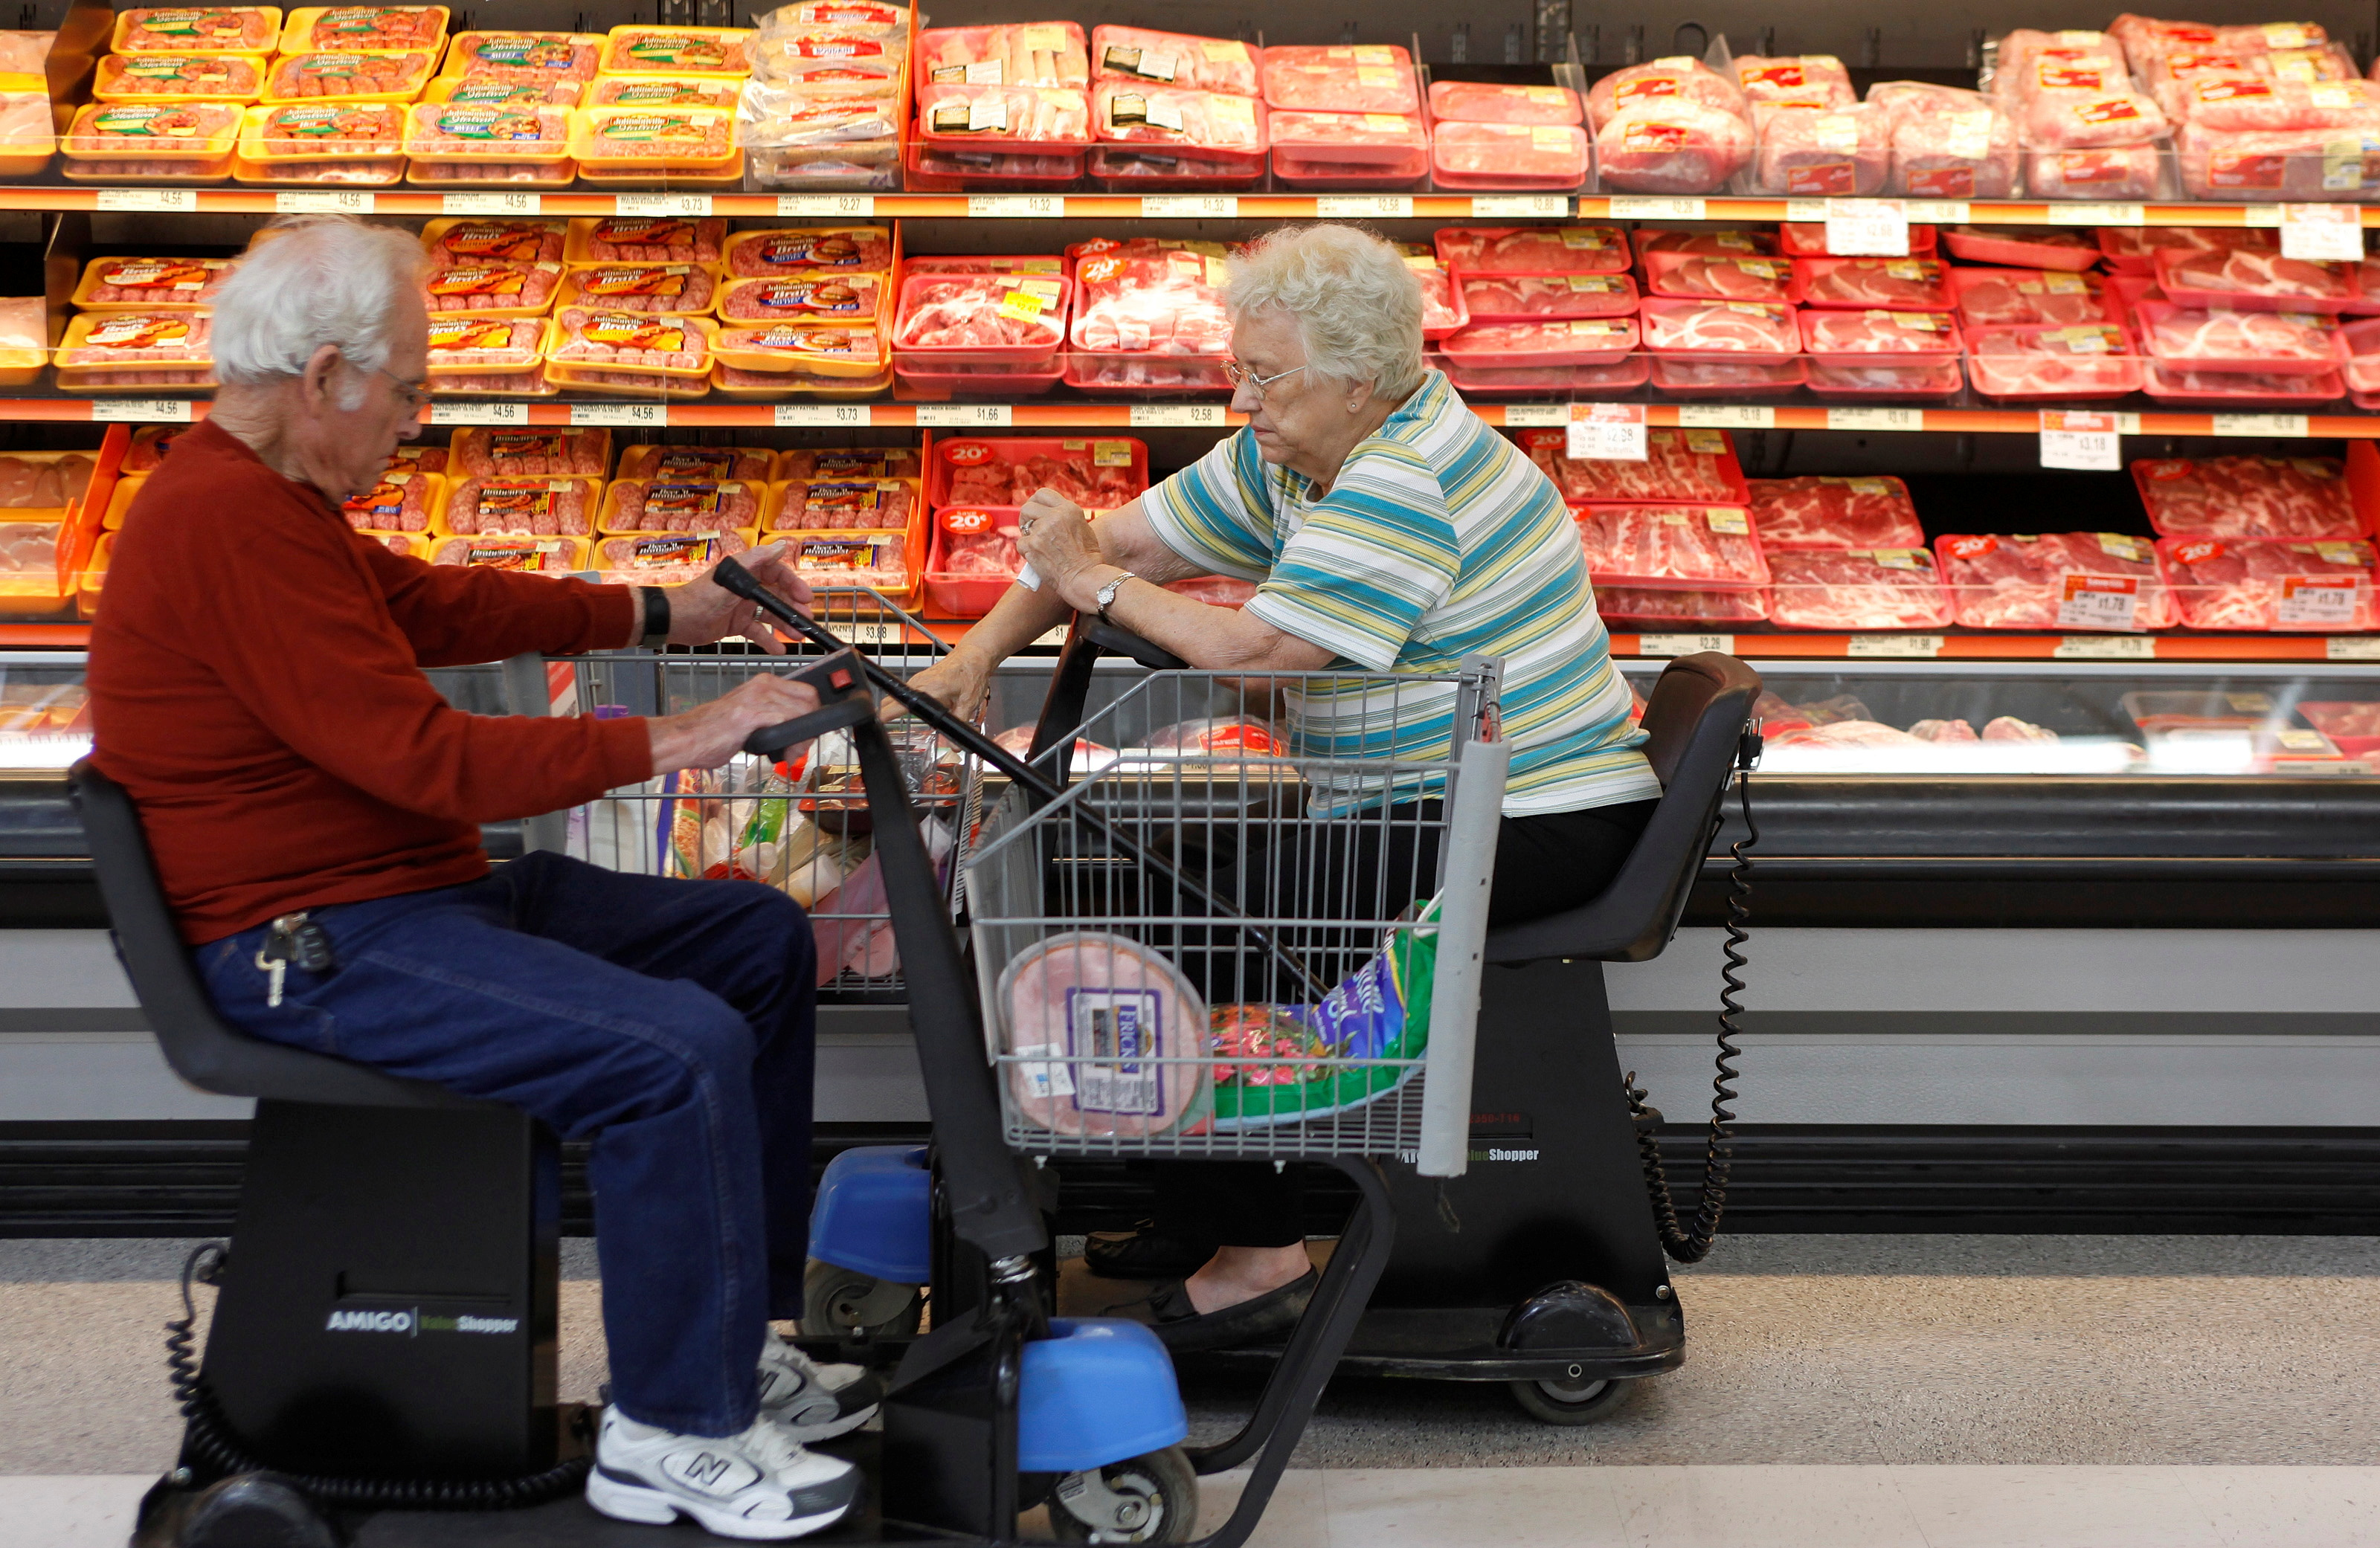 Customers shop for meat at Wal-Mart in Rogers, Arkansas, June 4, 2009. REUTERS/Jessica Rinaldi/File Photo